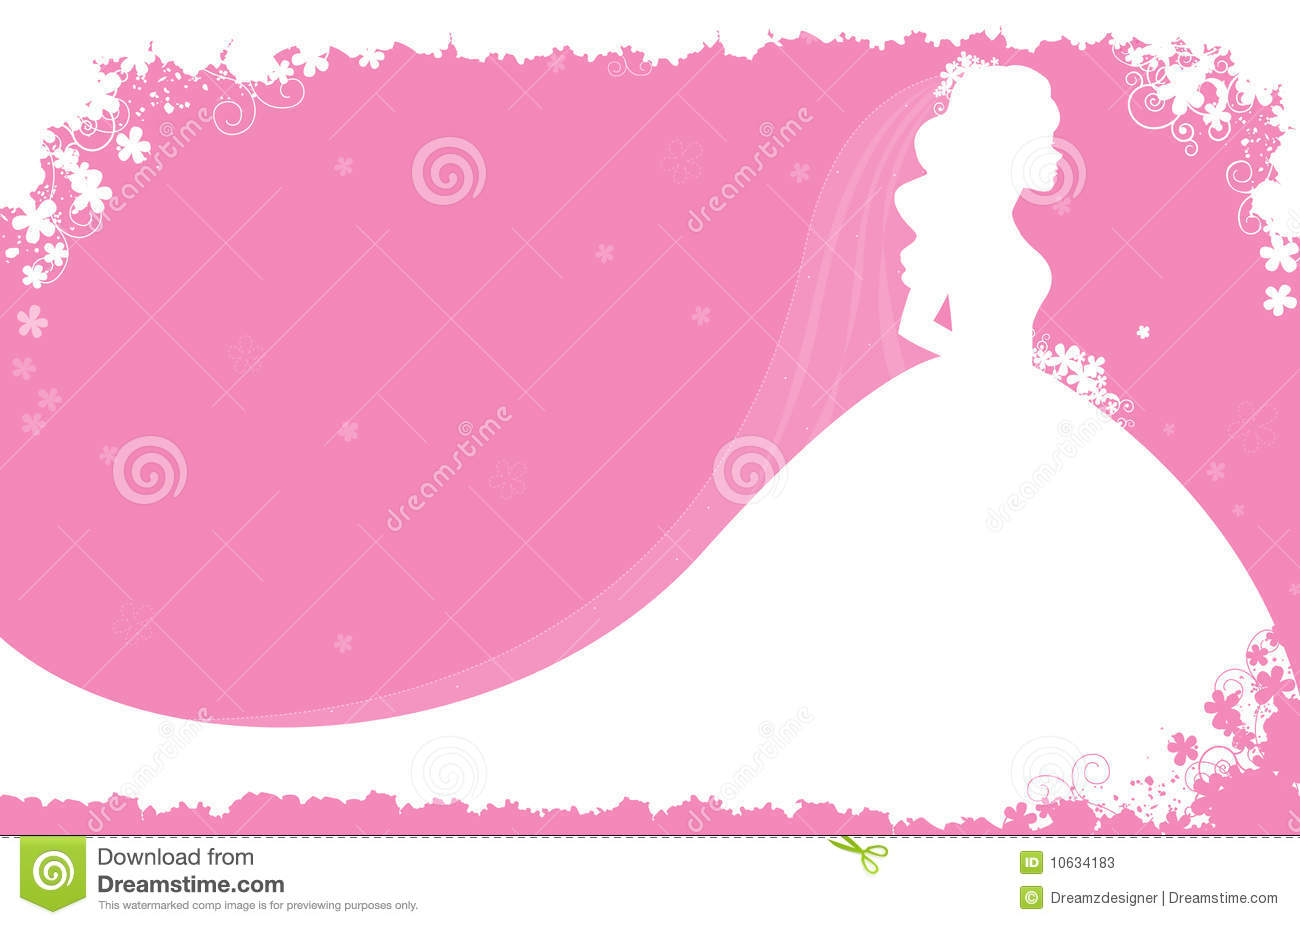 Bridal Shower Background Clipart.